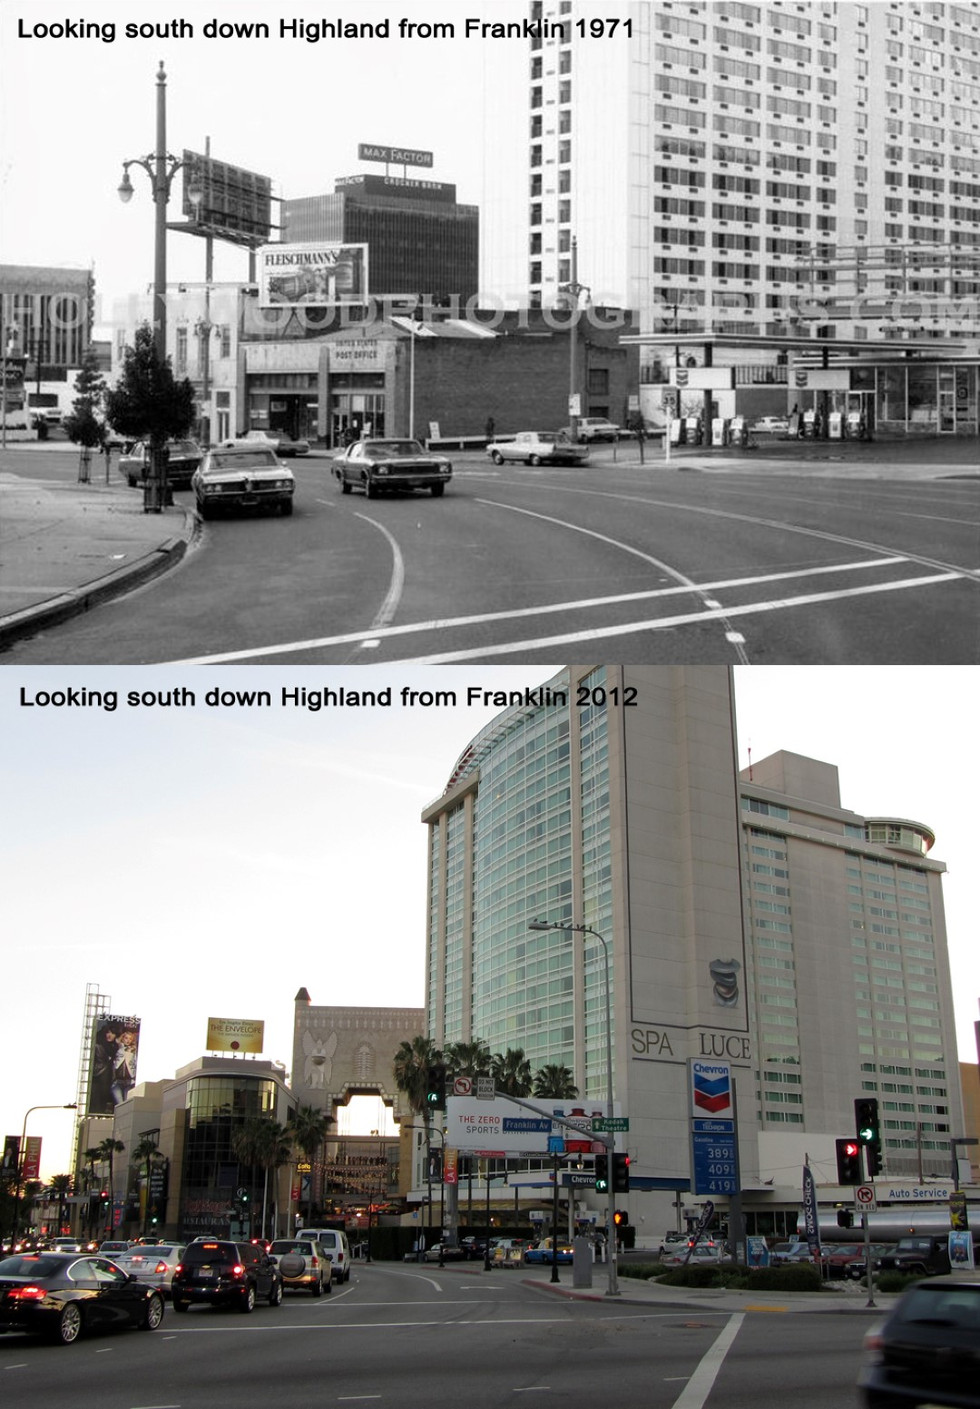 Looking south down Highland from From Franklin 1971 - 2012